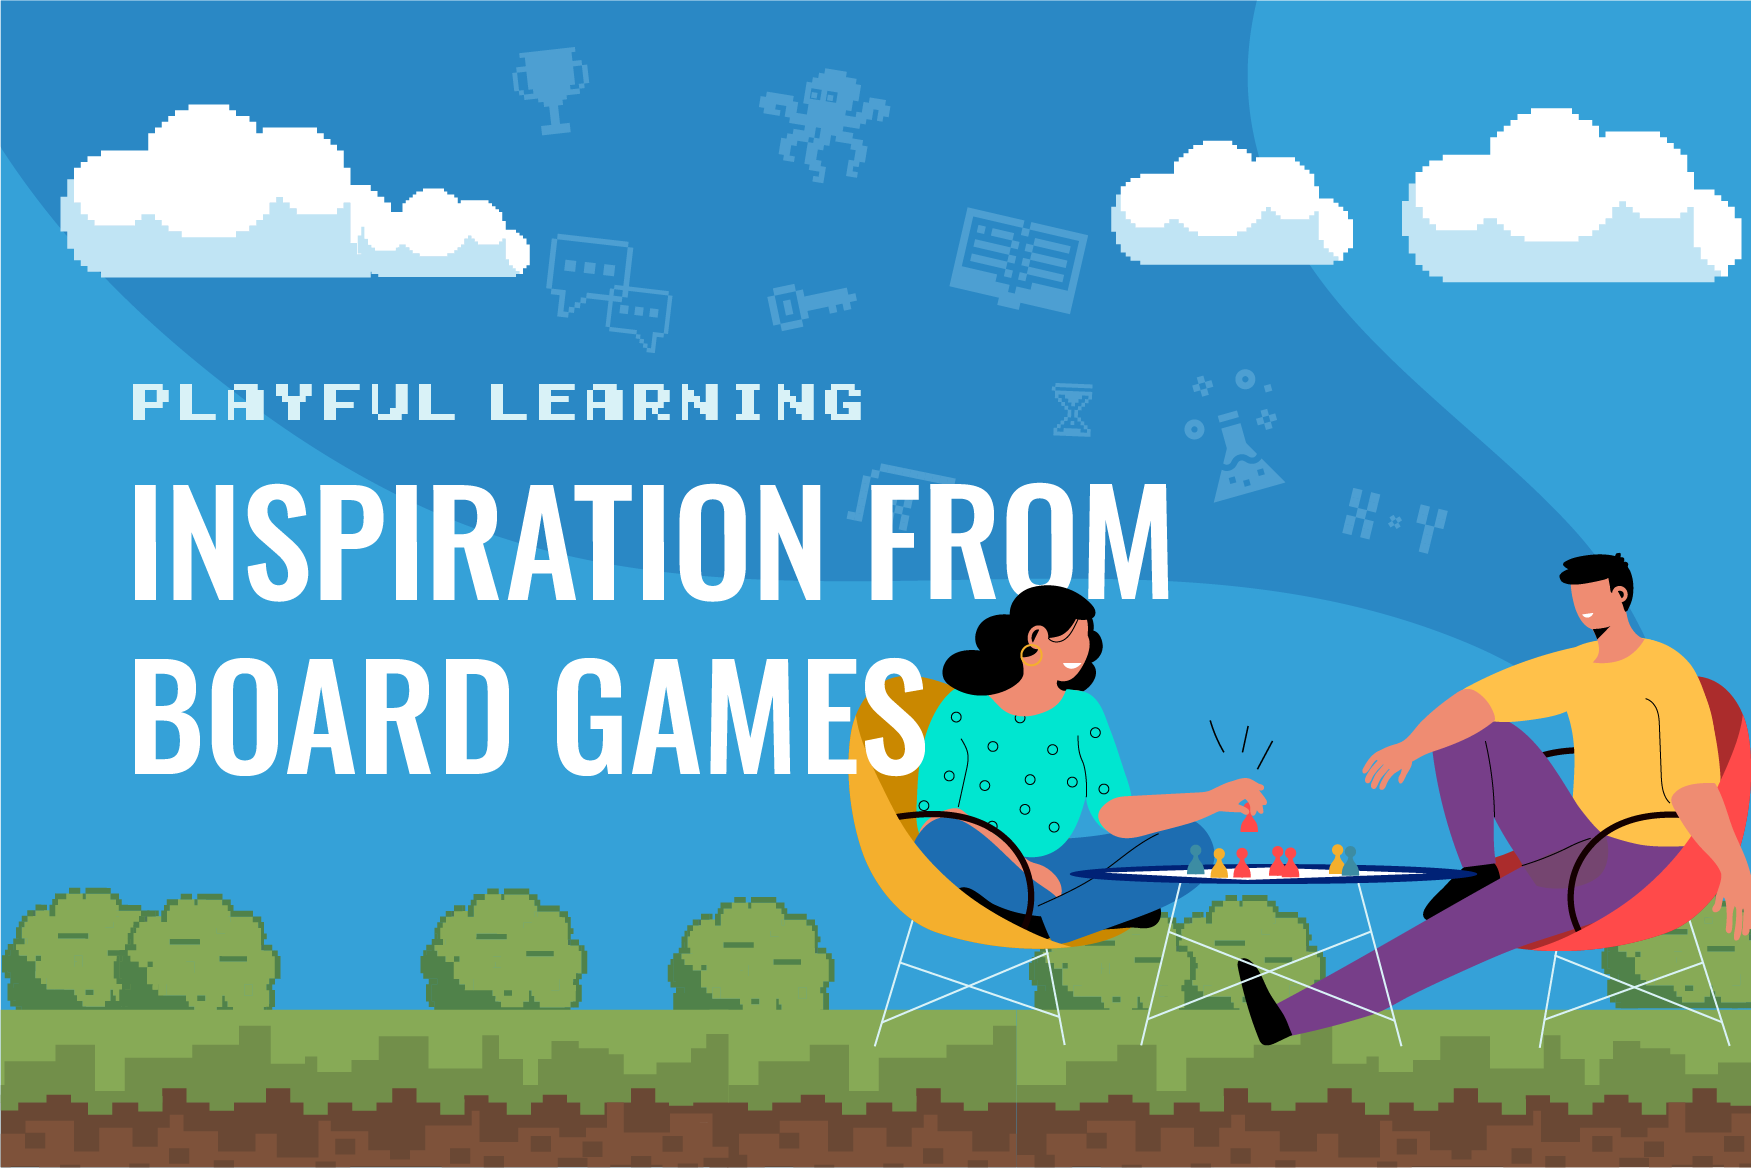 Playful Learning Inspiration from Board Games